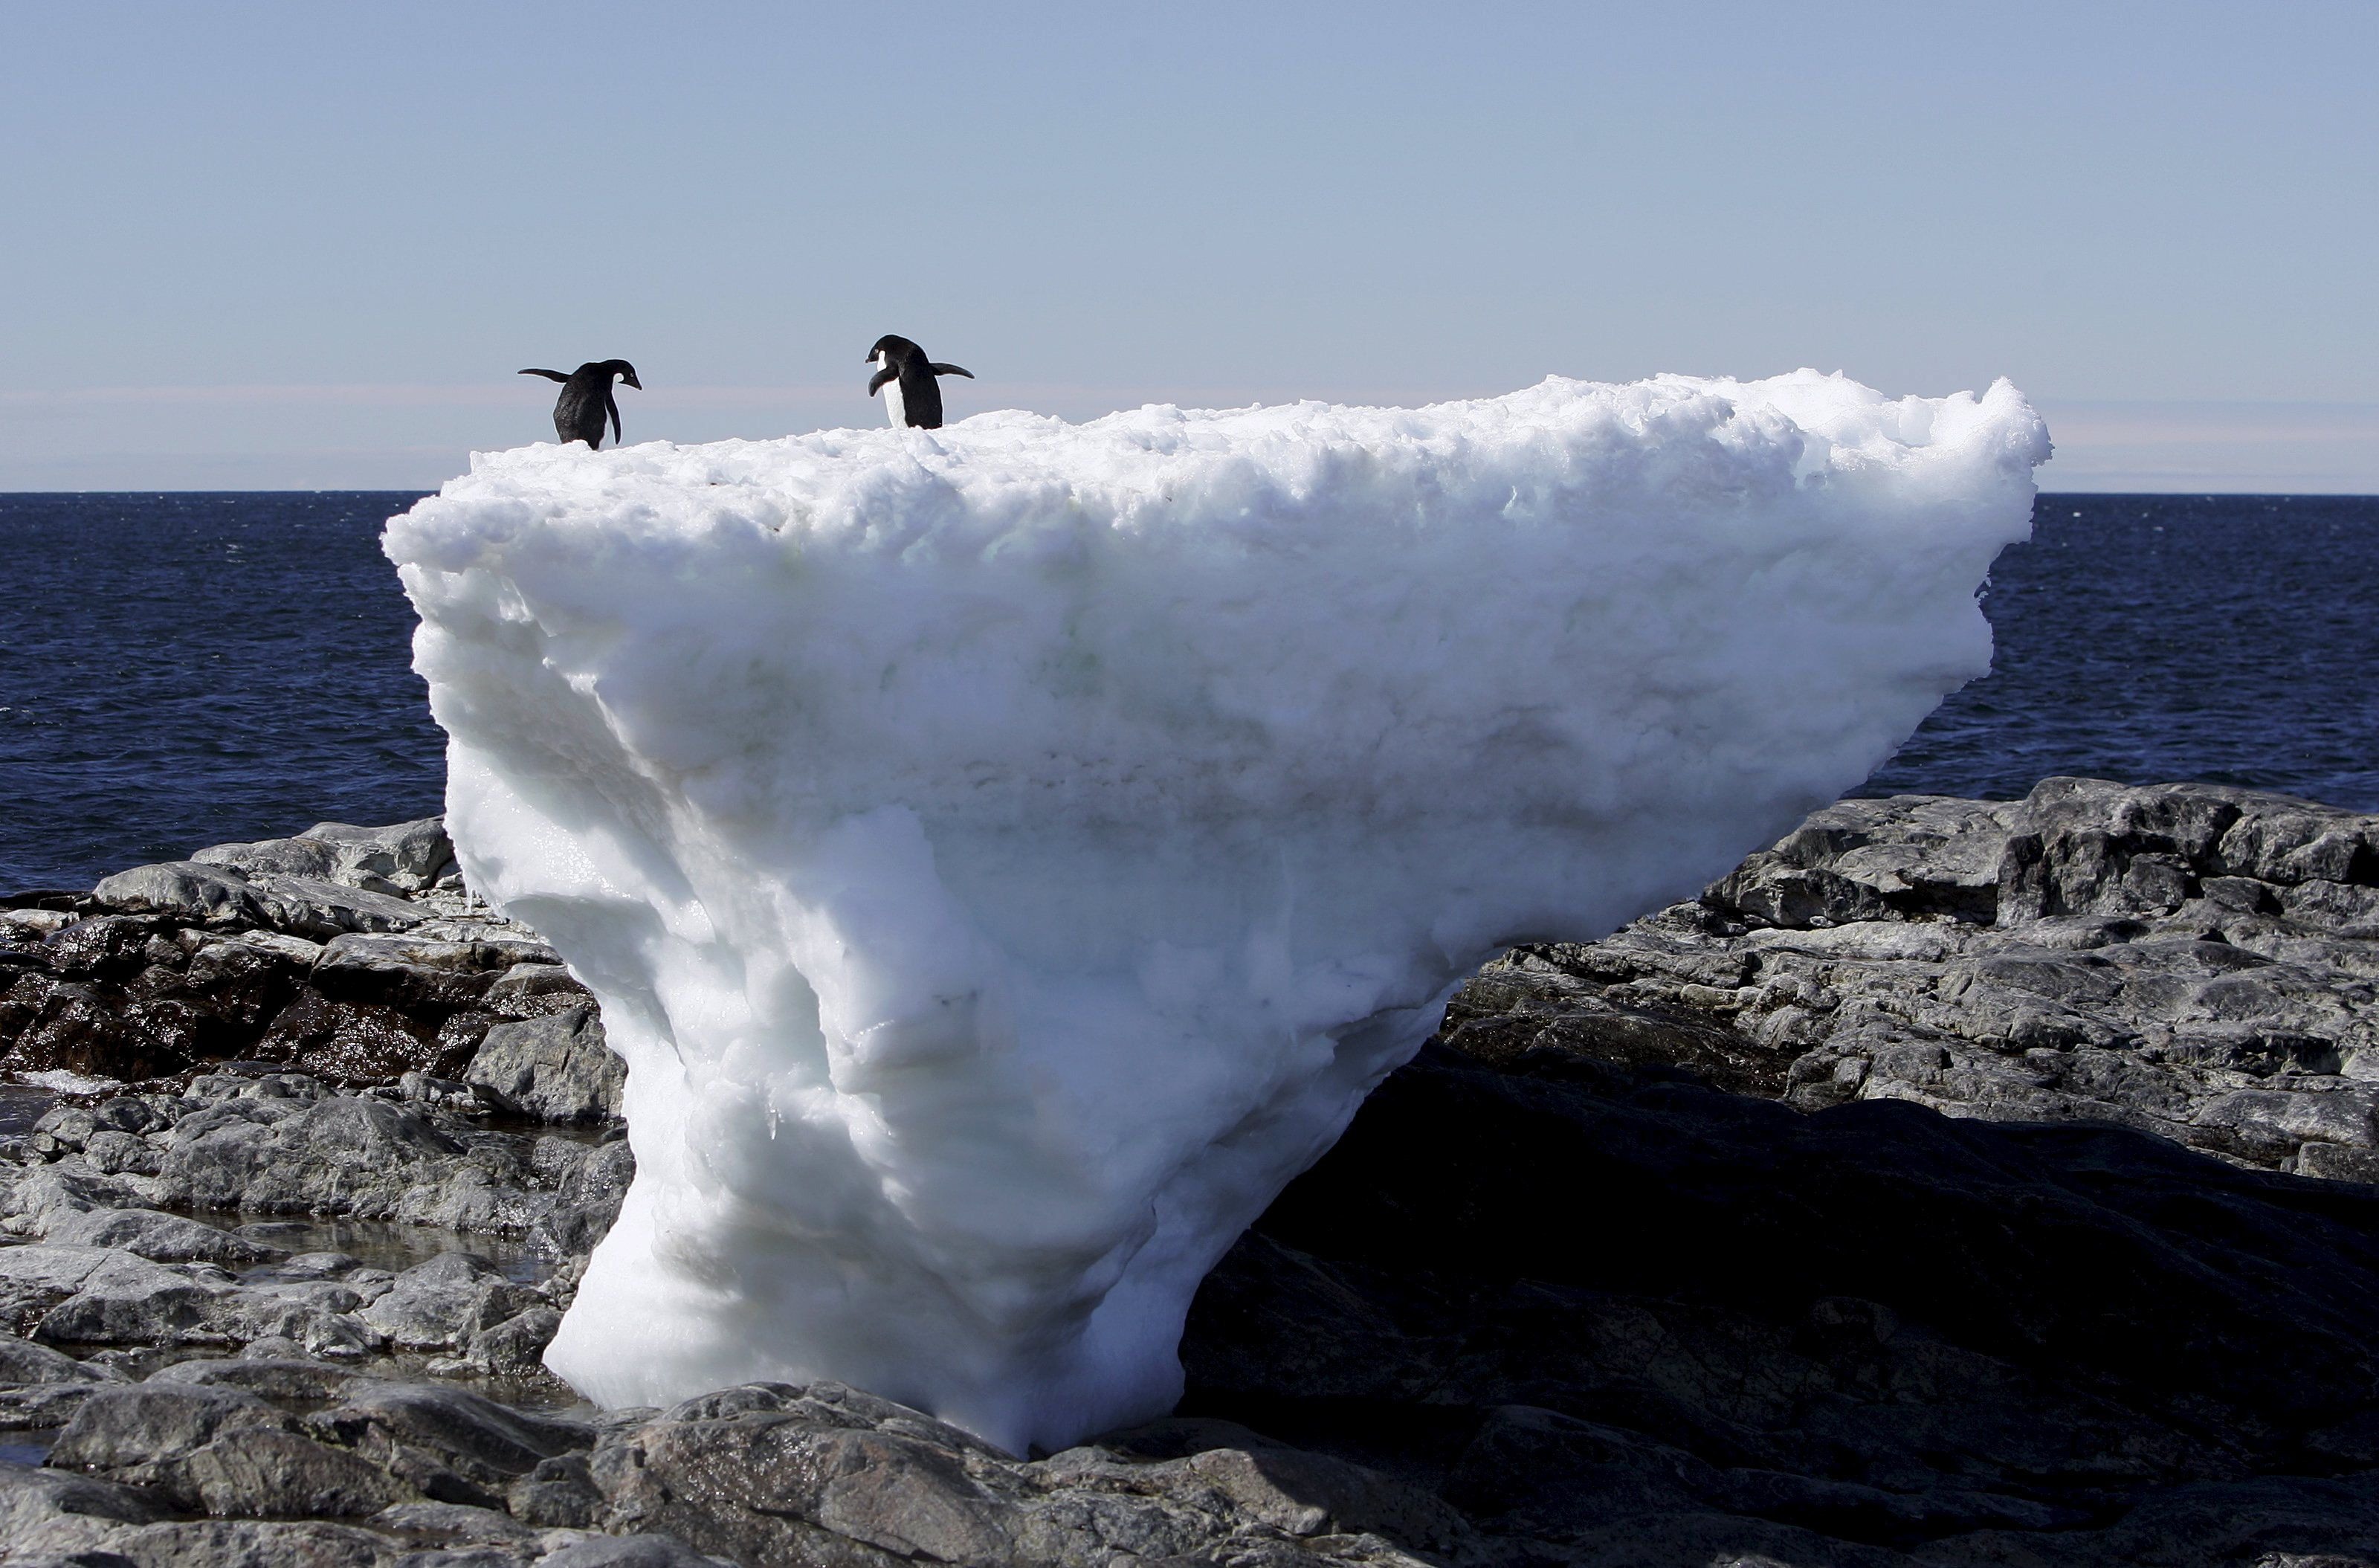 Two Adelie penguins stand atop a block of melting ice on a rocky shoreline at Cape Denison, Commonwealth Bay, in East Antarctica in this January 1, 2010 file photo.    REUTERS/Pauline Askin/Files